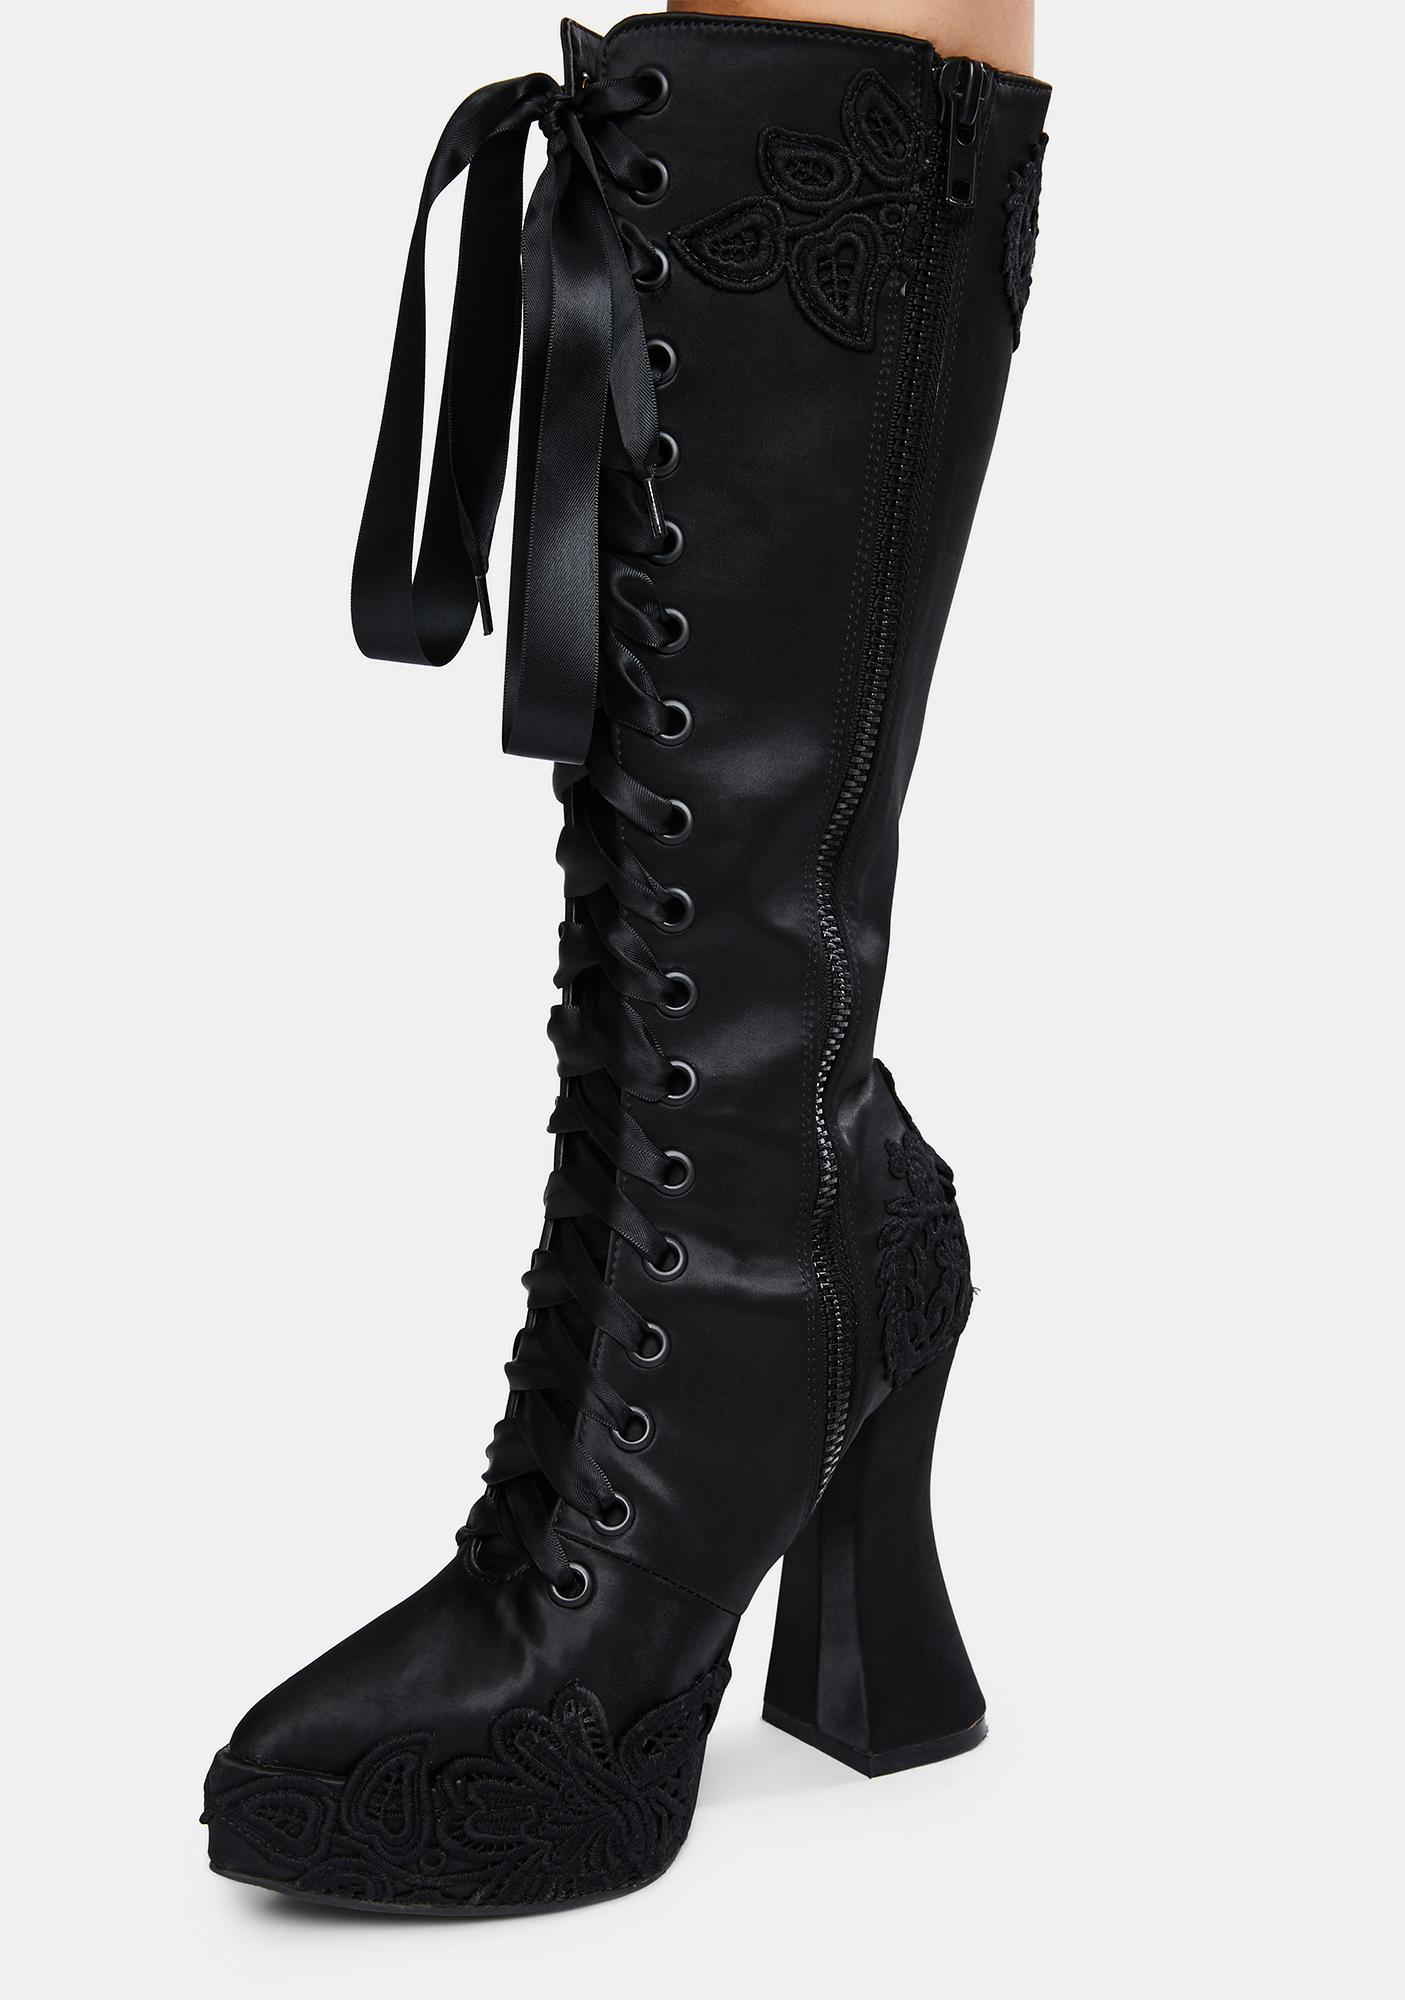 Widow Paint It Black Satin Knee High Boots